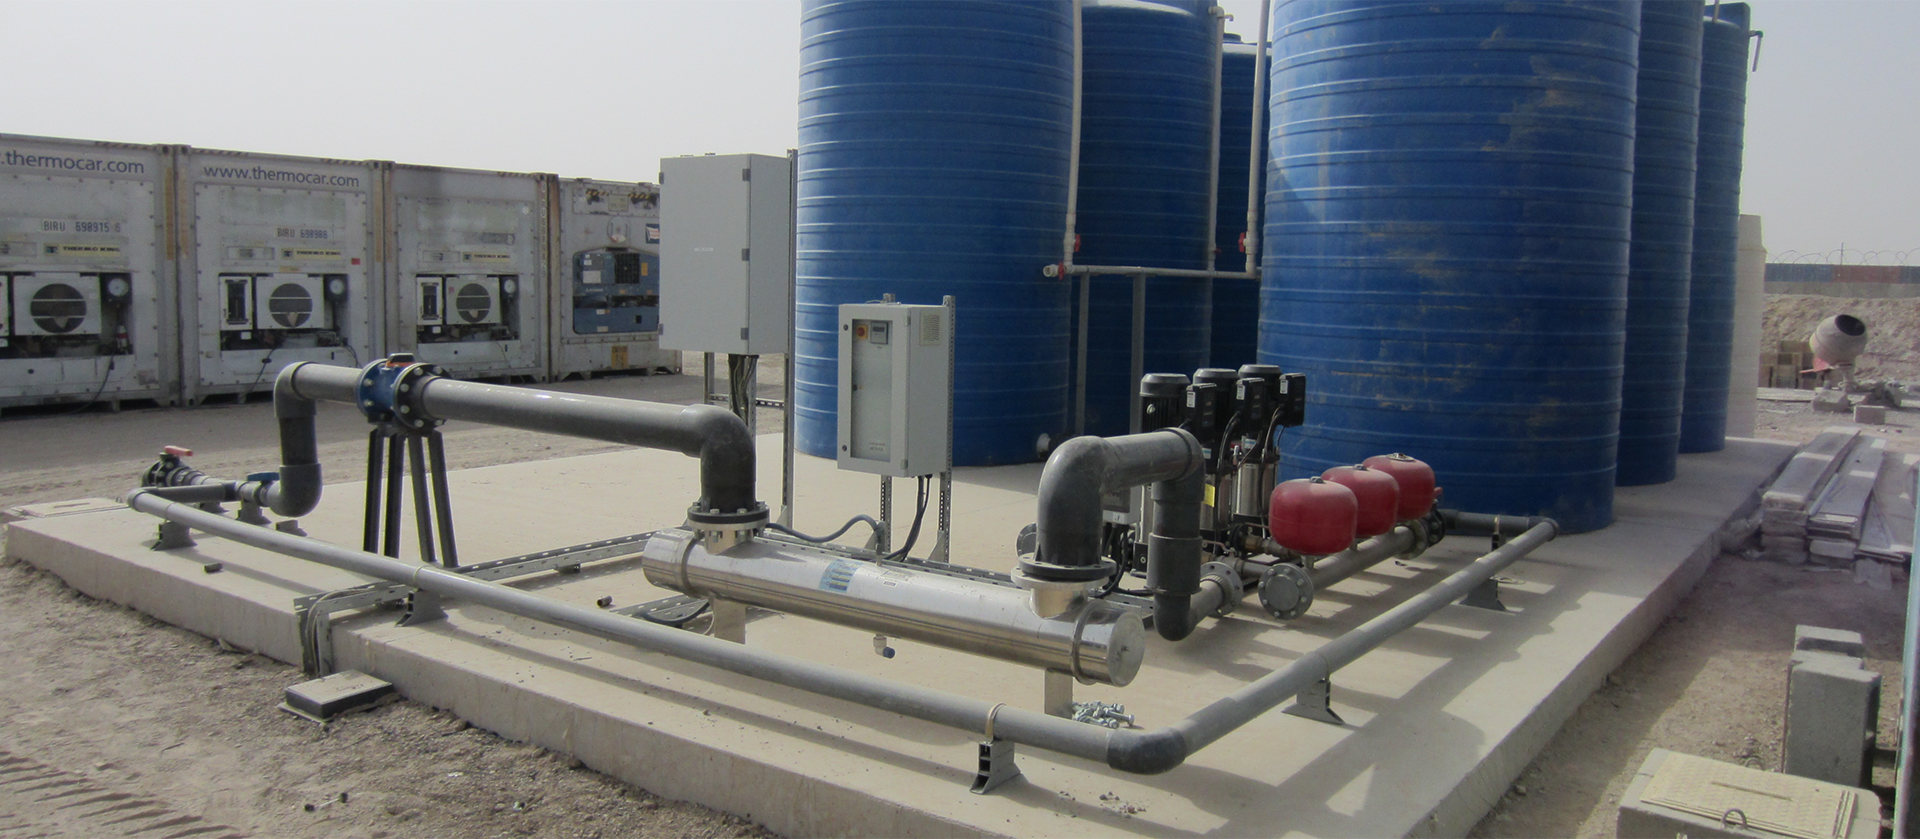 Customized diesel generating sets, potable water tanks, submersible pumps for water wells, pressure groups, water and waste water treatment plants